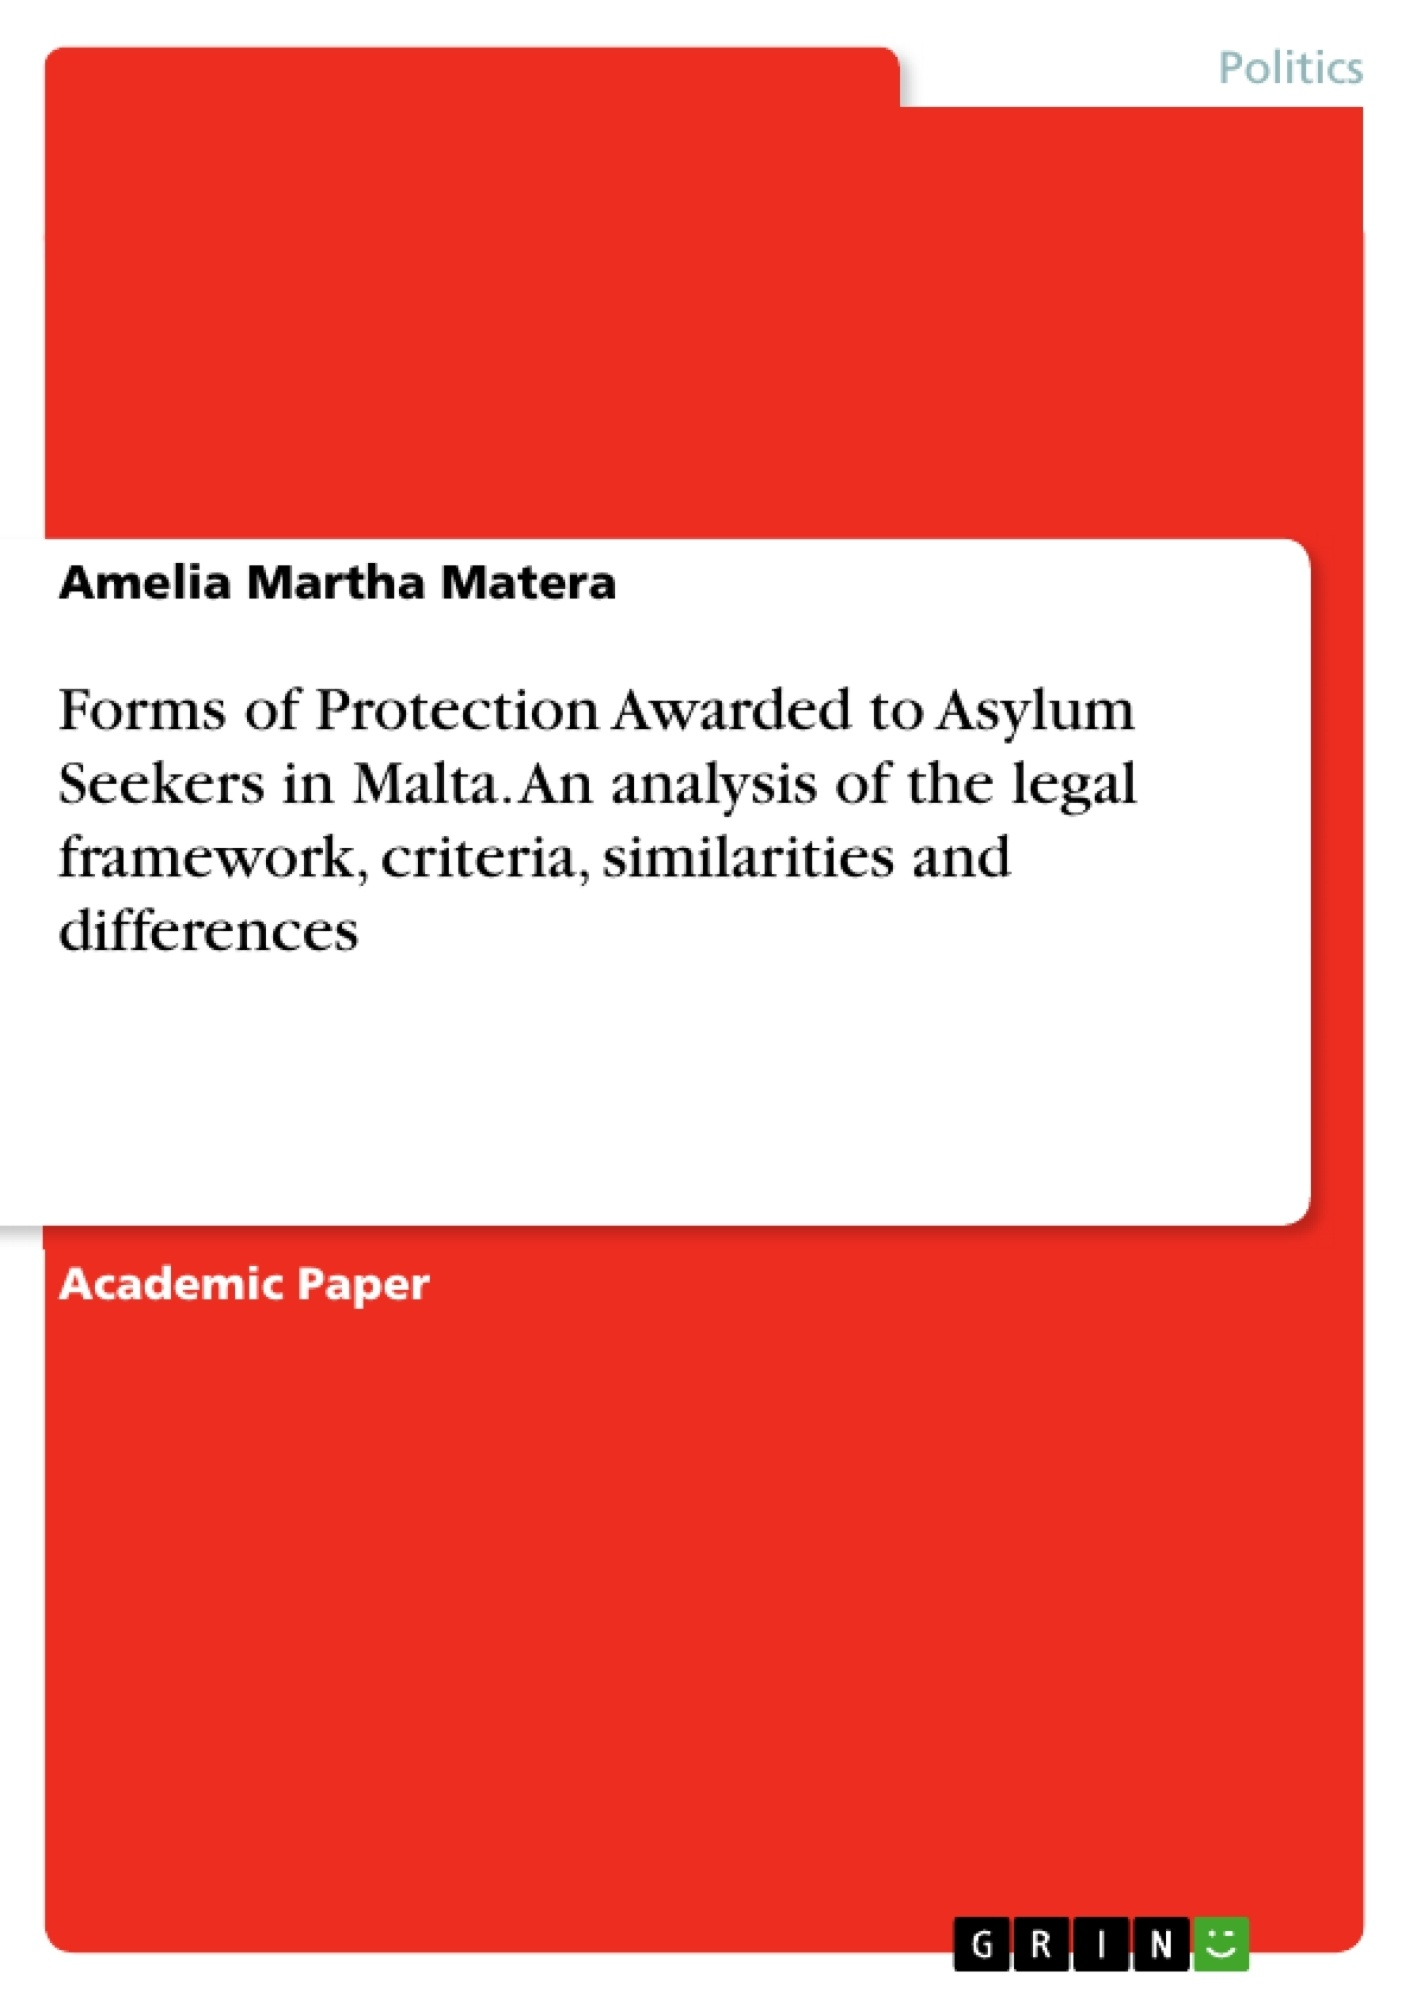 Title: Forms of Protection Awarded to Asylum Seekers in Malta. An analysis of the legal framework, criteria, similarities and differences